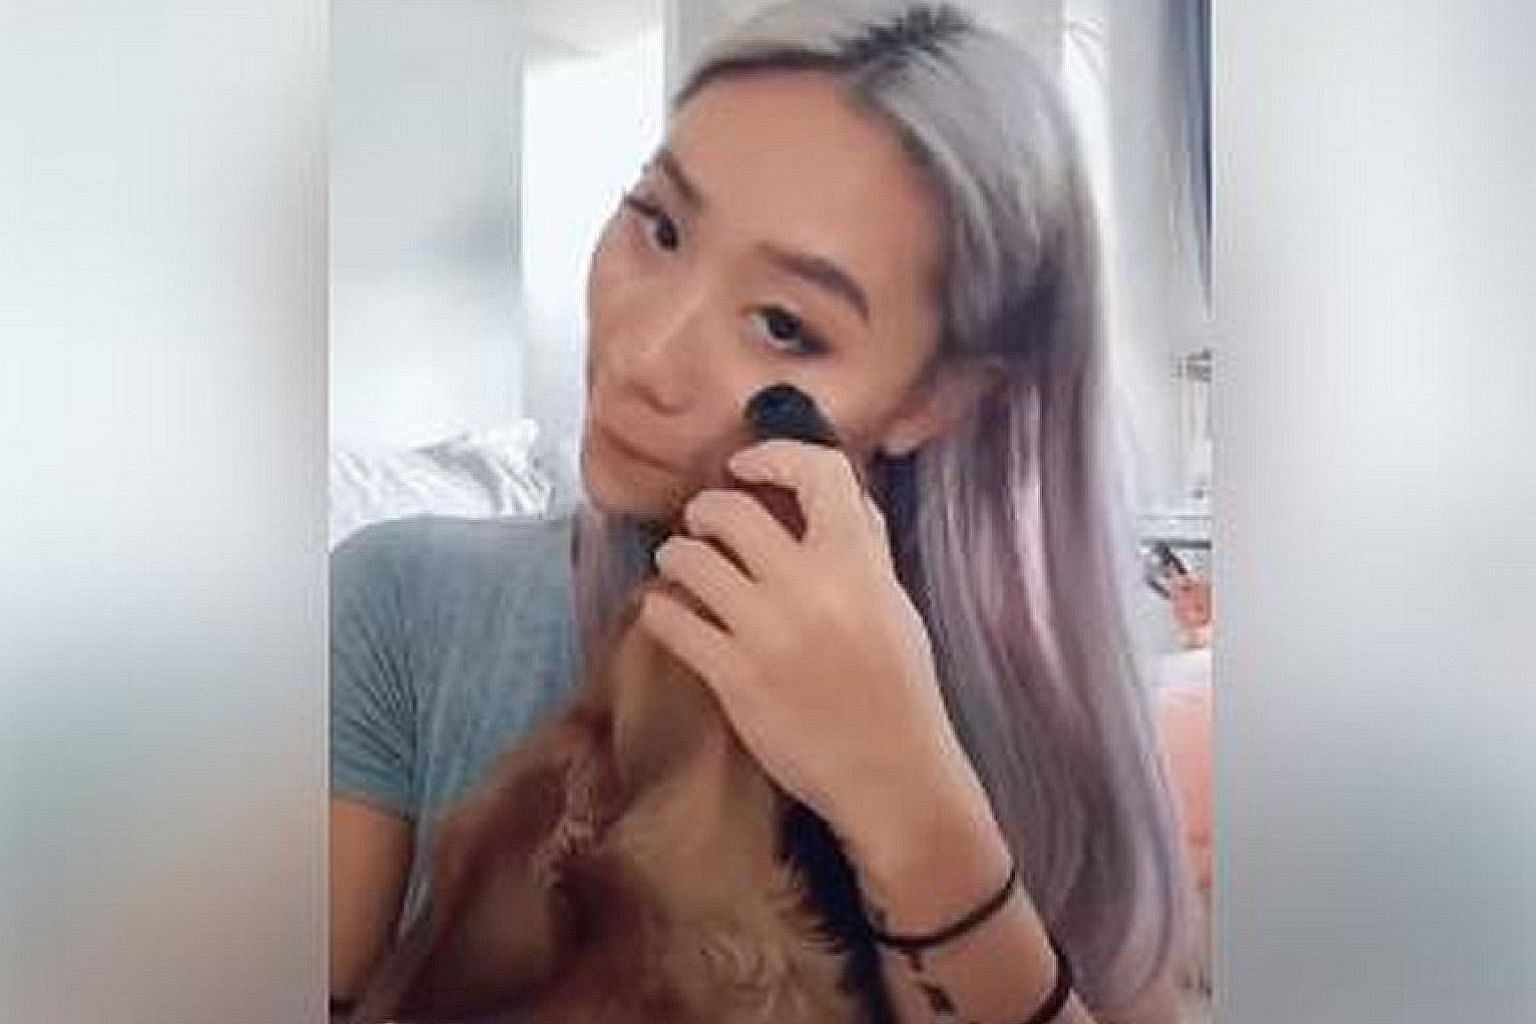 IT'S A DOG'S LIFE: Animal lovers have barked their disapproval over how singer-actress Sandra Riley Tang applies make-up. In a Tik Tok video posted in an animal lovers' group on Facebook, the member of Singapore pop outfit The Sam Willows is seen app